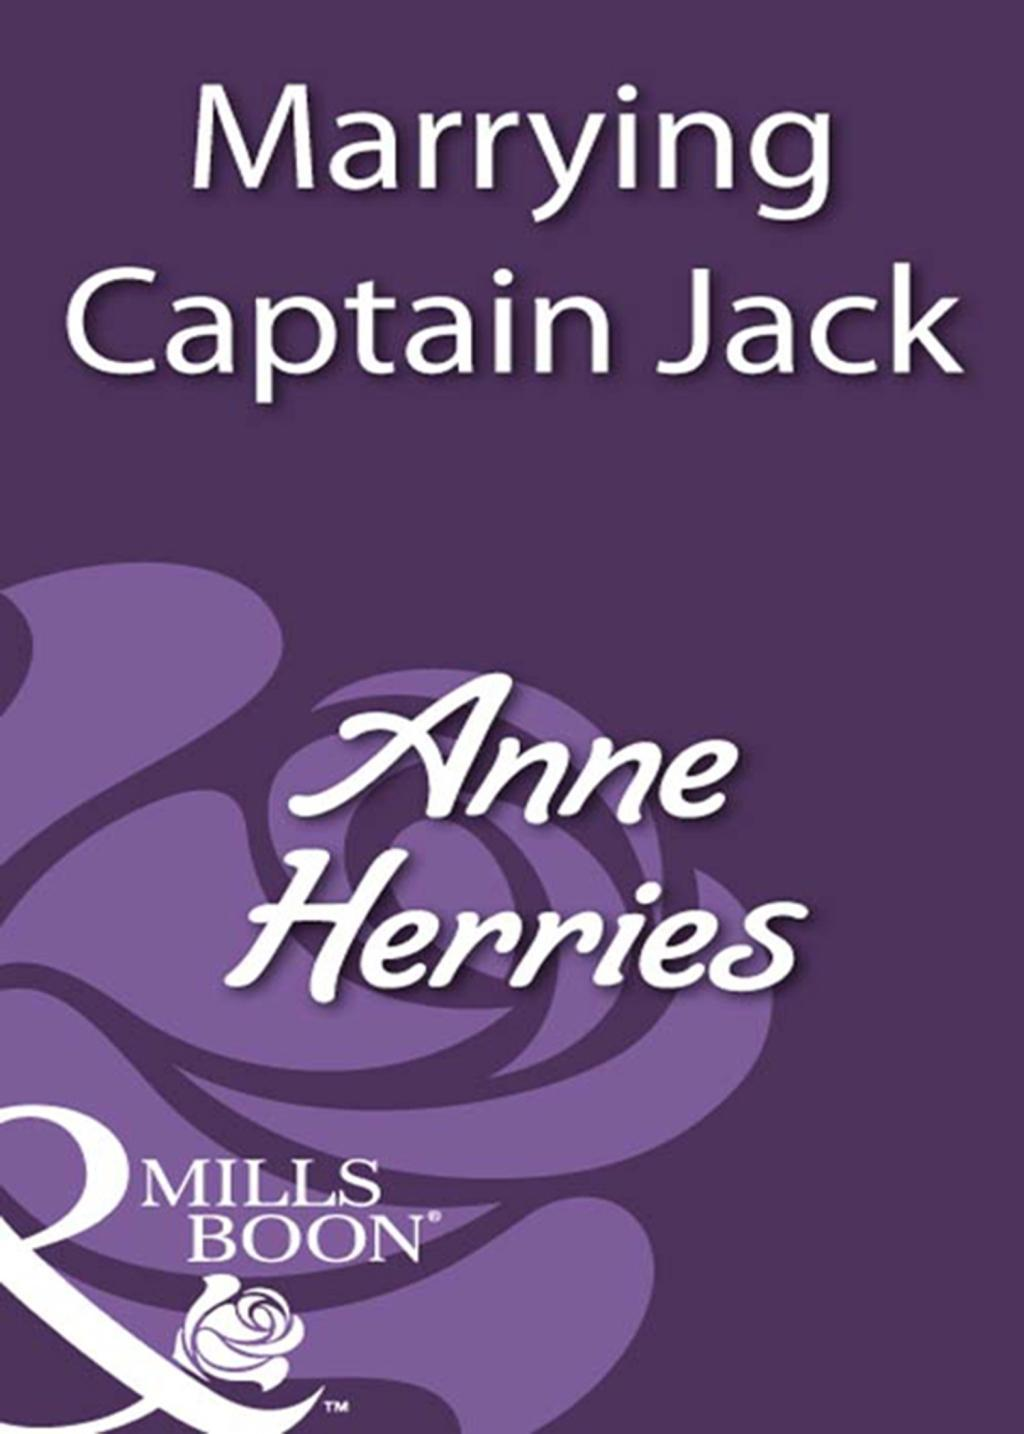 Marrying Captain Jack (Mills & Boon Historical)